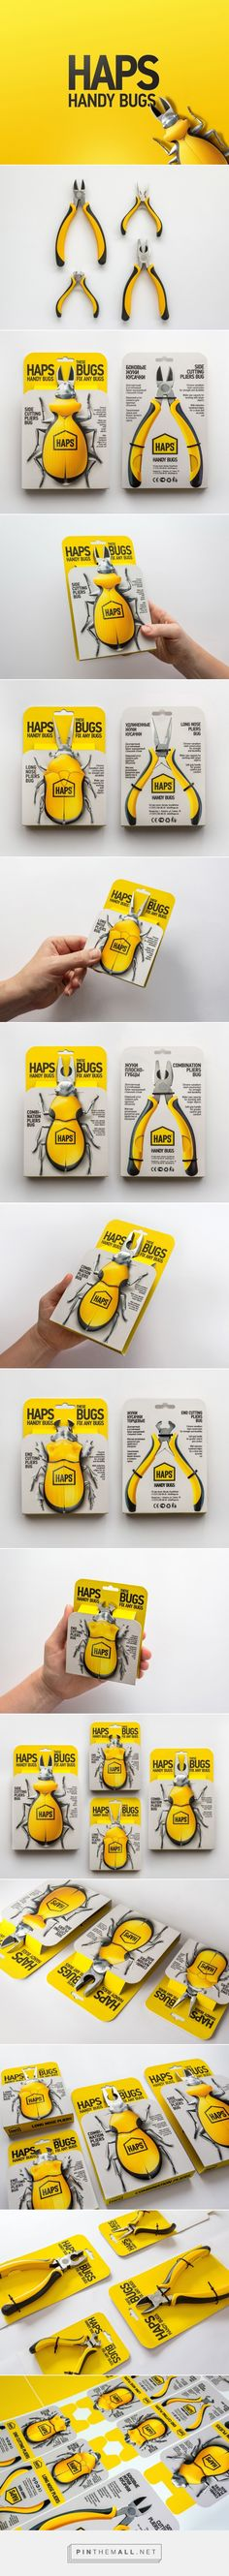 We love these bugs - Haps Handy Bugs Pliers packaging design concept by Igor Mitin - http://www.packagingoftheworld.com/2016/11/haps-handy-bugs-pliers.html